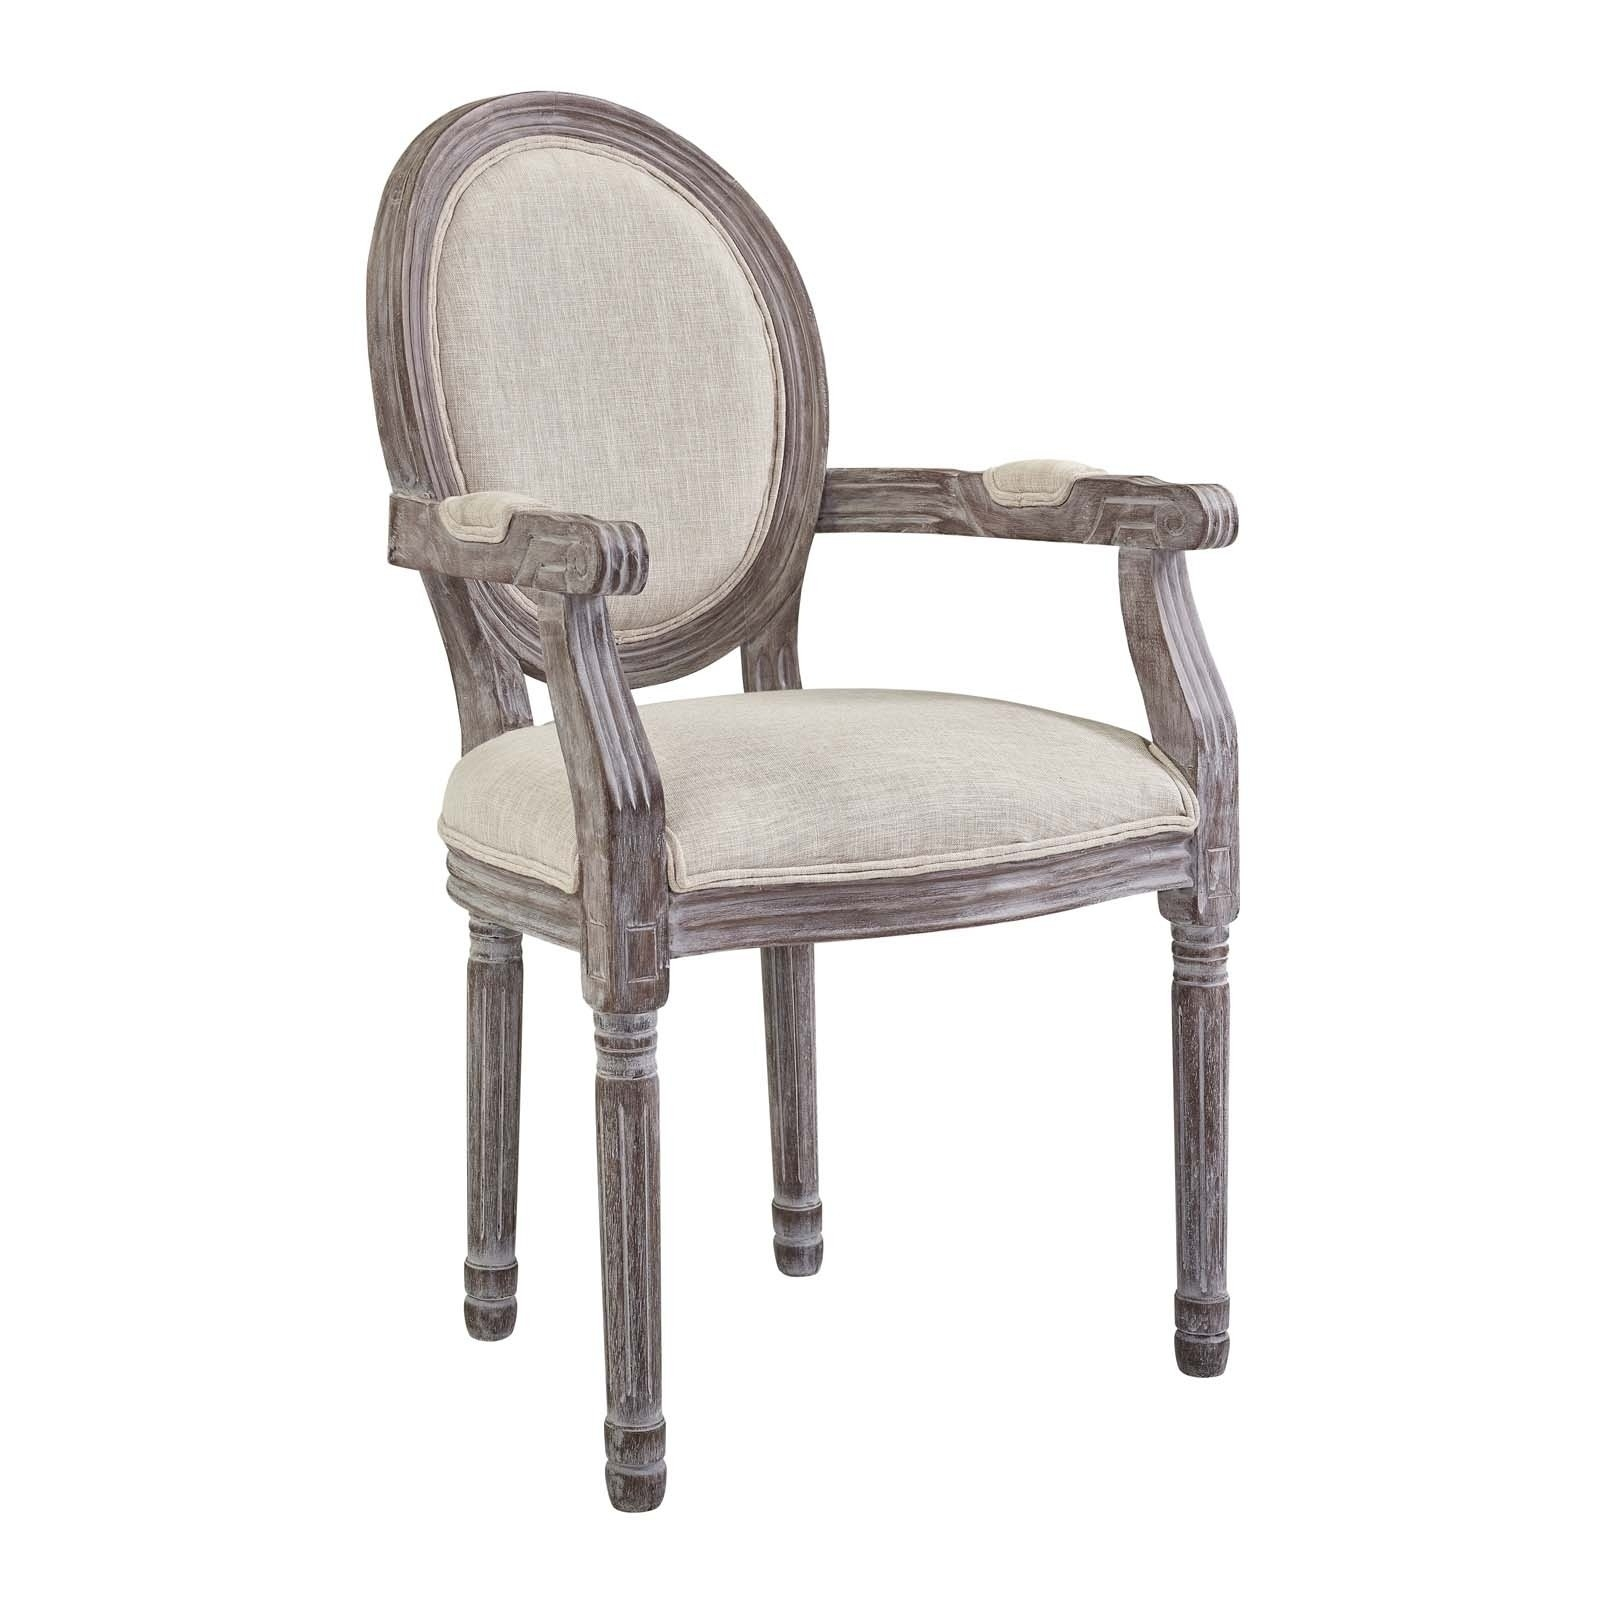 Shop Emanate Vintage French Upholstered Fabric Dining Armchair – N/a Throughout Most Current Caira Upholstered Arm Chairs (View 14 of 20)